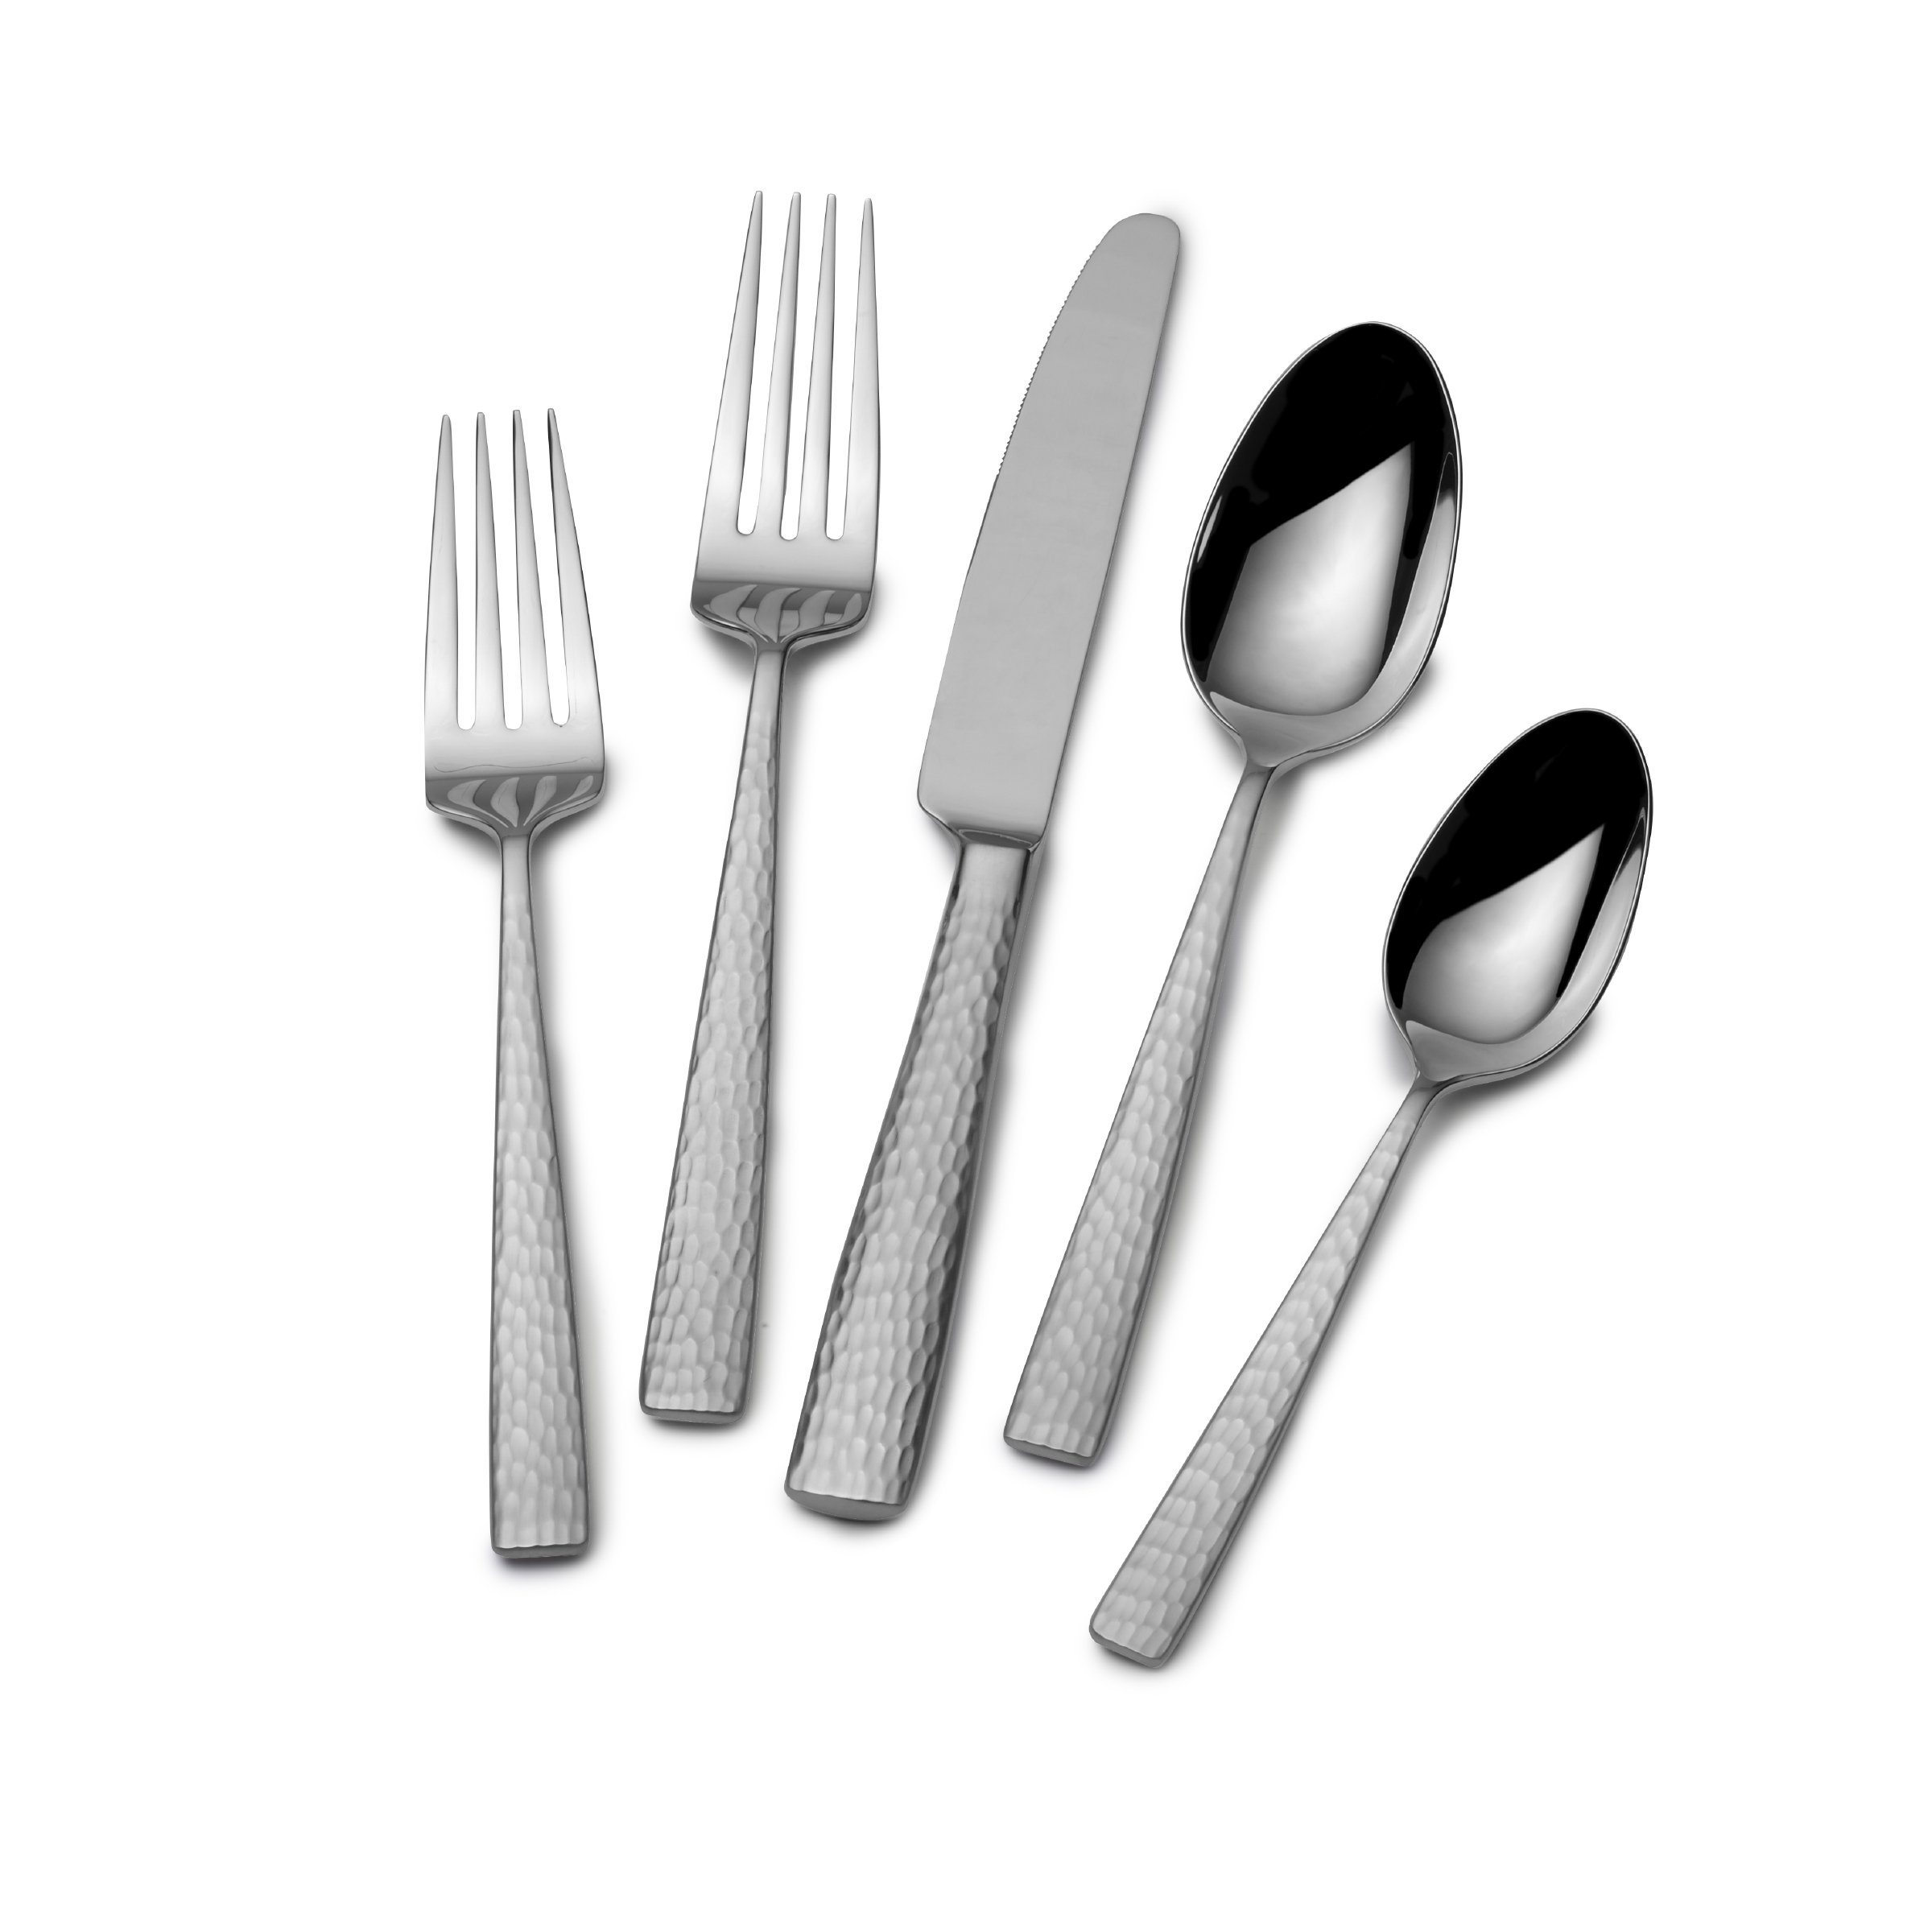 Mikasa Oliver 65-Piece 18/10 Stainless Steel Flatware Set with Serveware, Service for 12 by Mikasa